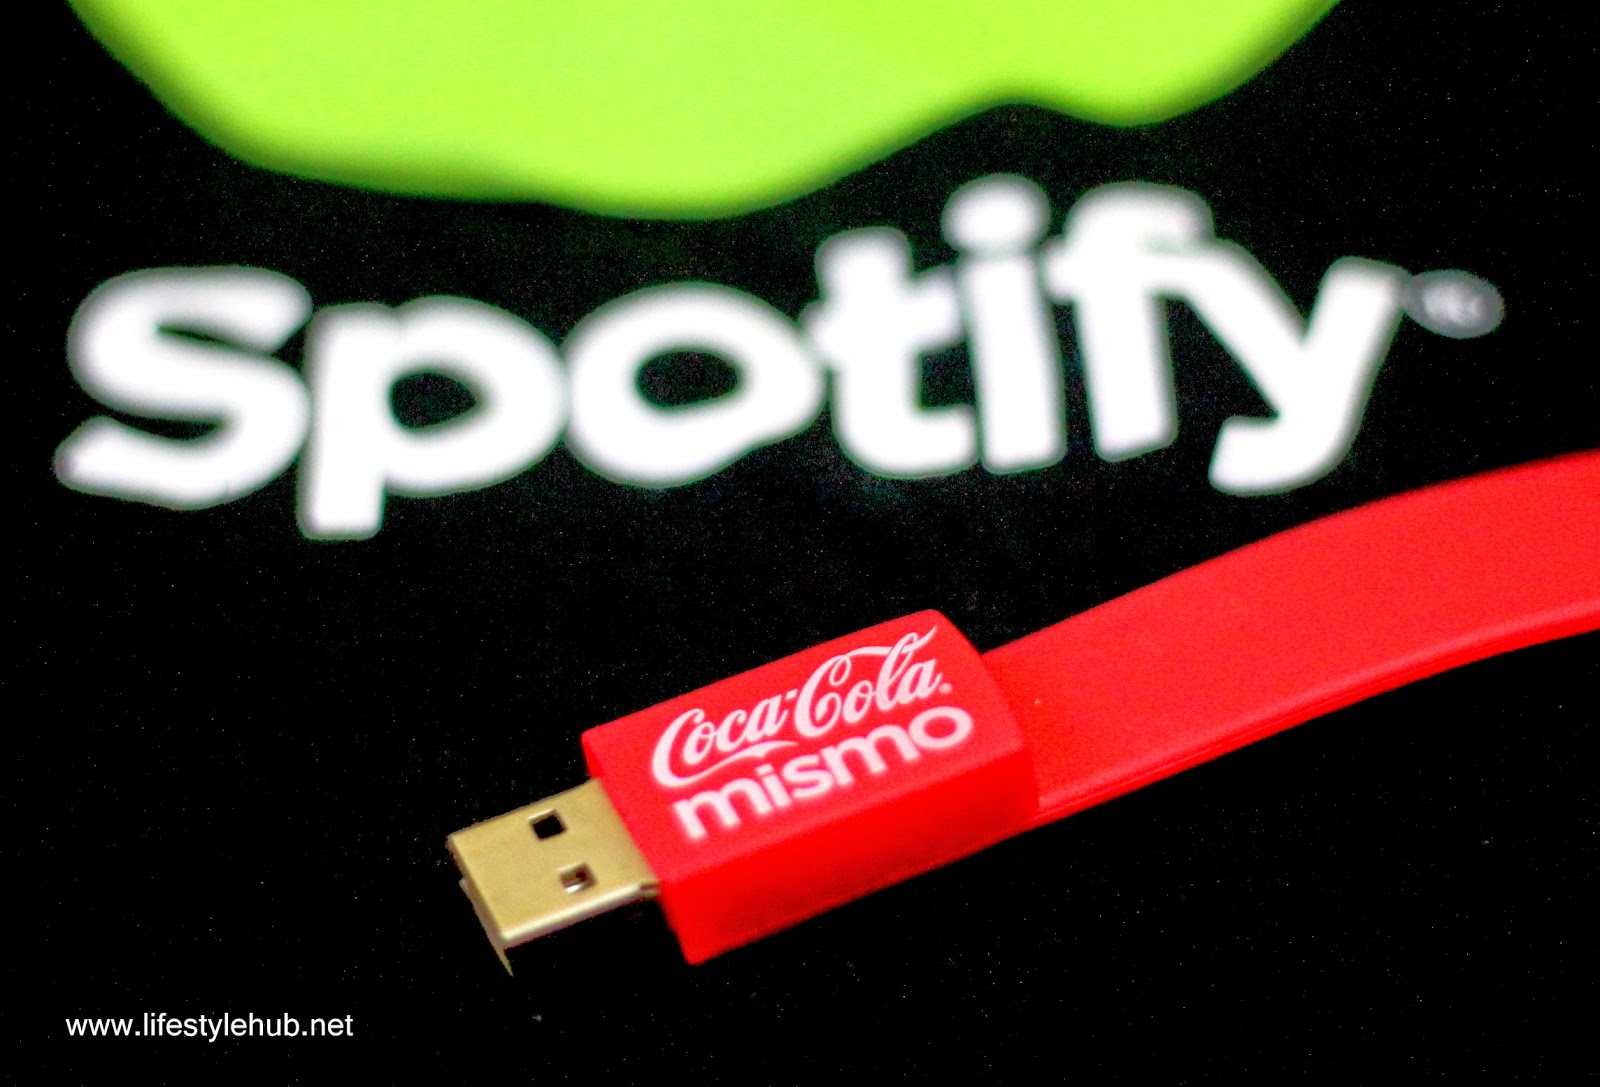 coca-cola and spotify